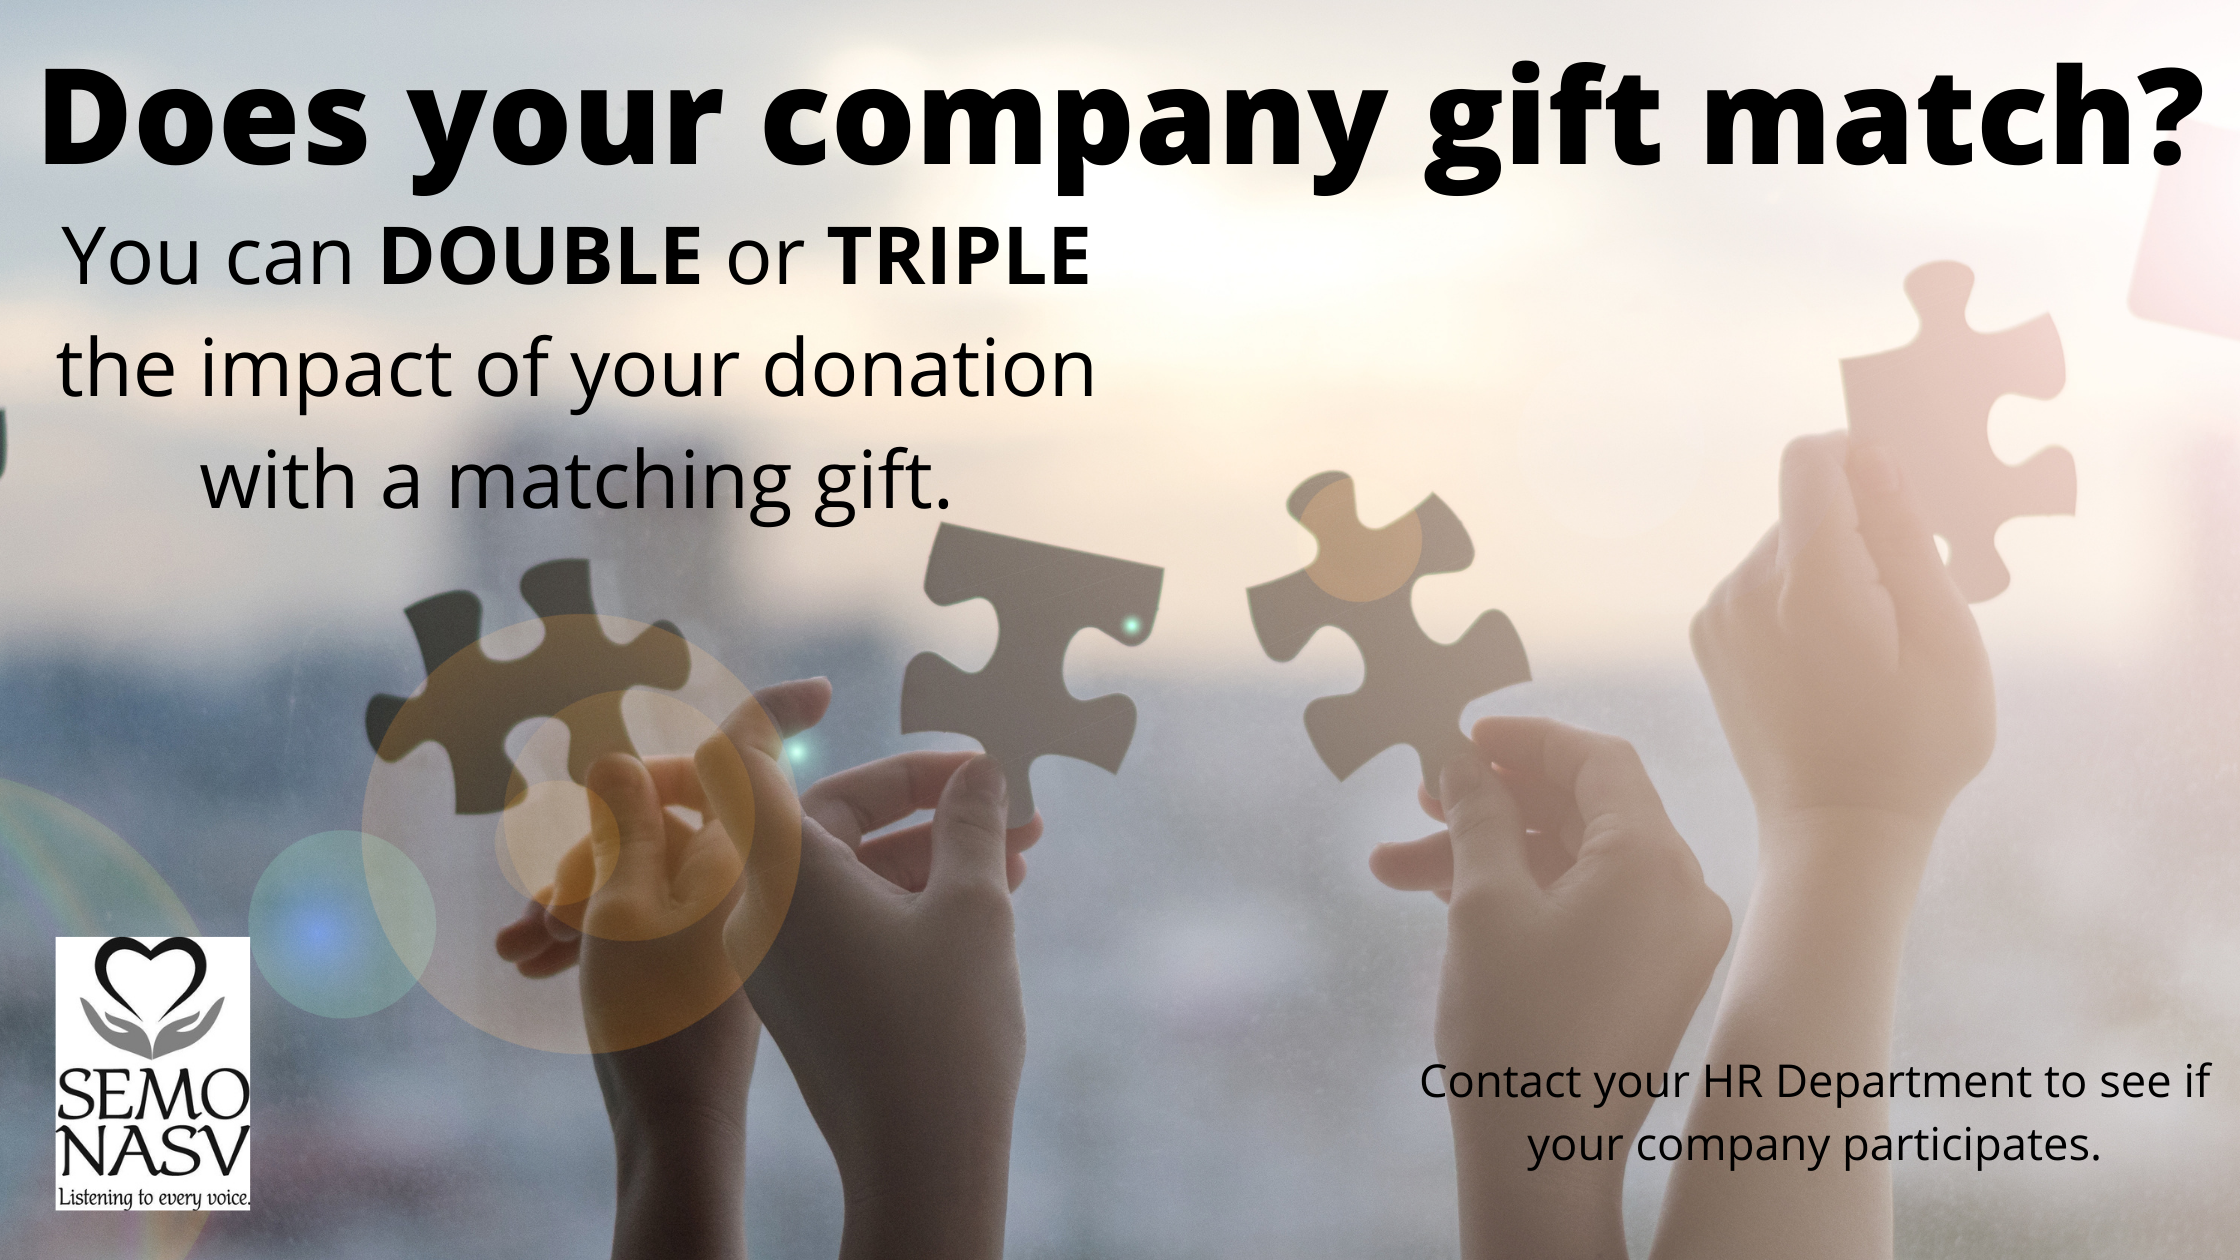 Does your company gift match? Ask your HR department to find out more.